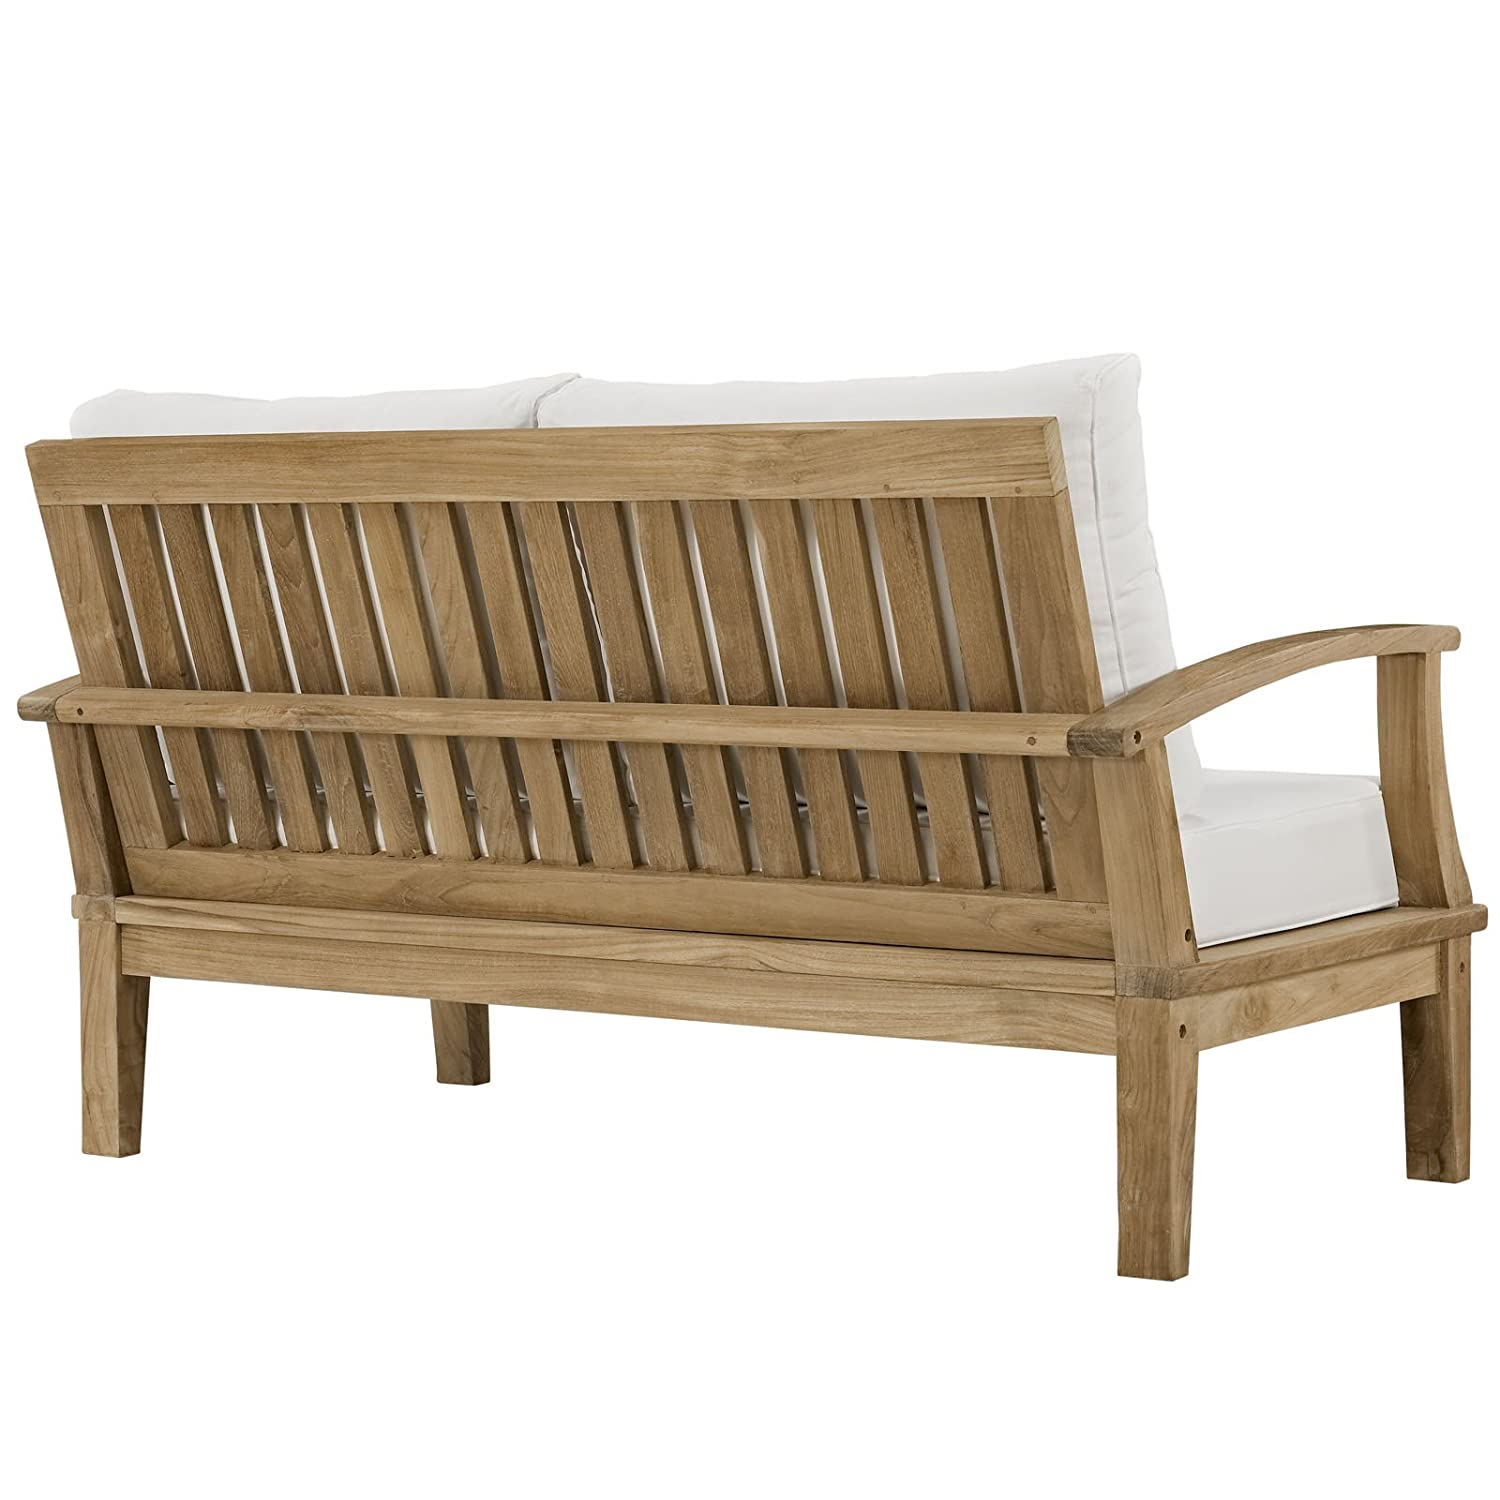 cymone loveseat the for mid iconic century pin settee wood featuring makes seater shape